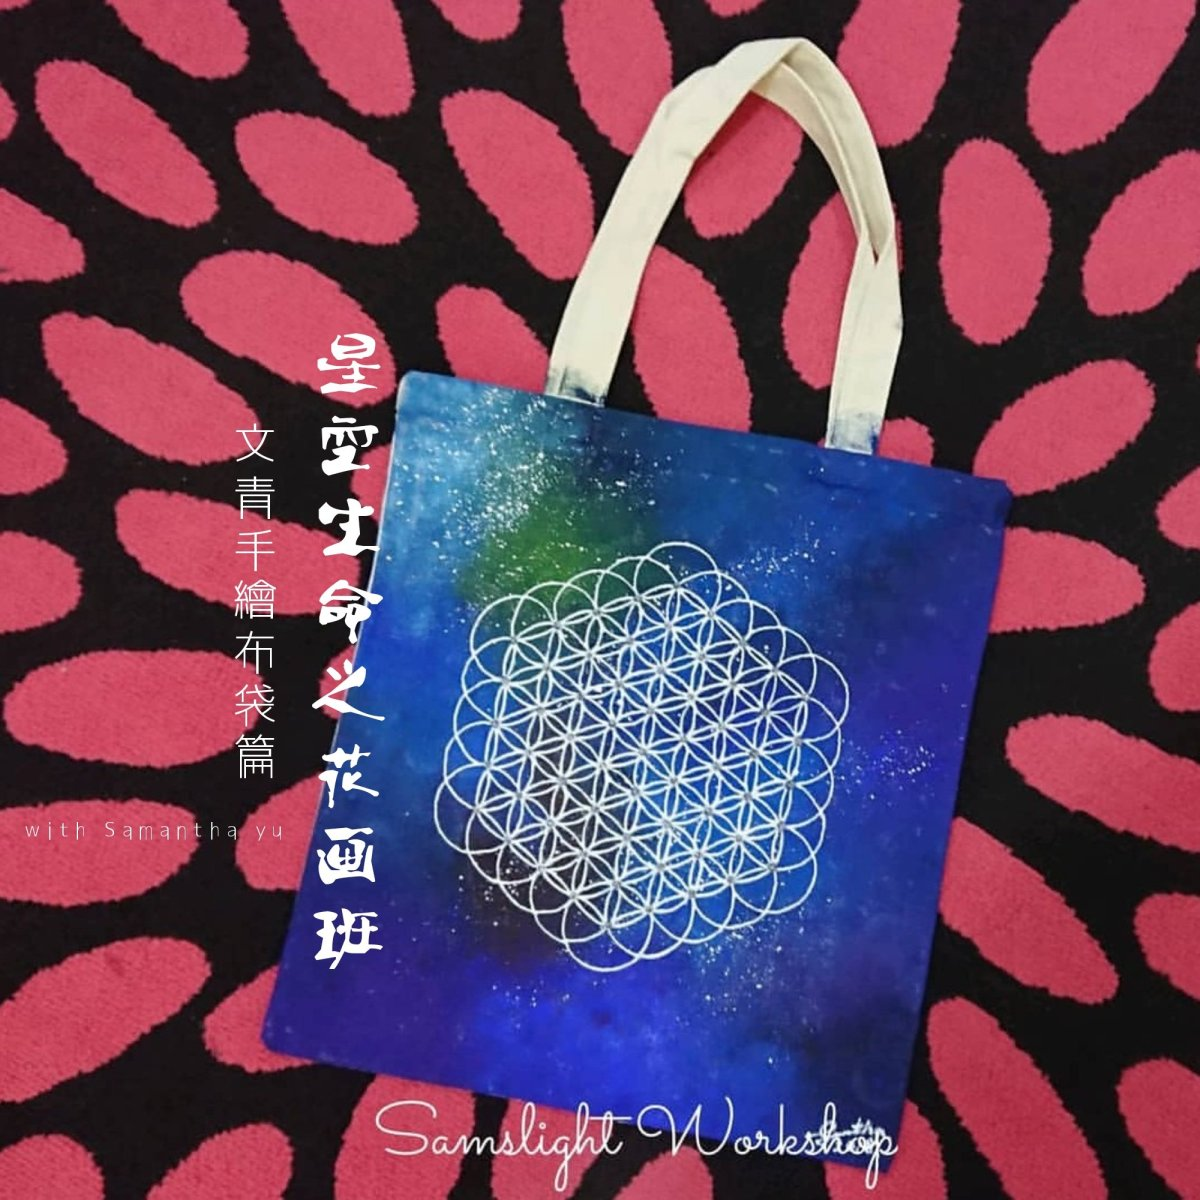 Galaxy Flower of Life Painting Workshop 星空生命之花畫班